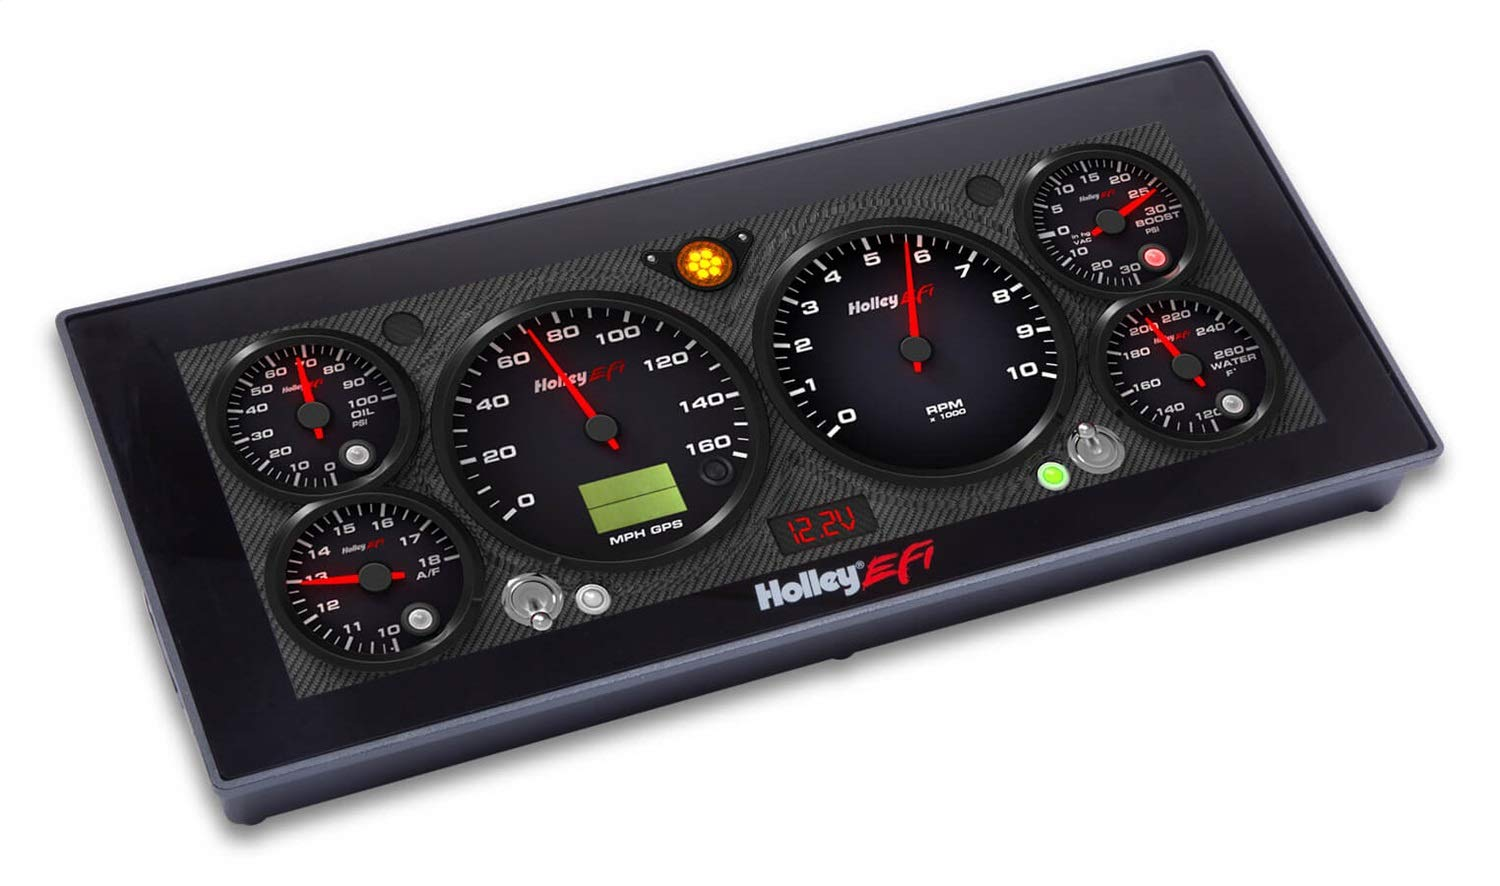 Holley 553-111 EFI Pro Dash Compatible with EFI Dominator or HP ECU with V4 Buil